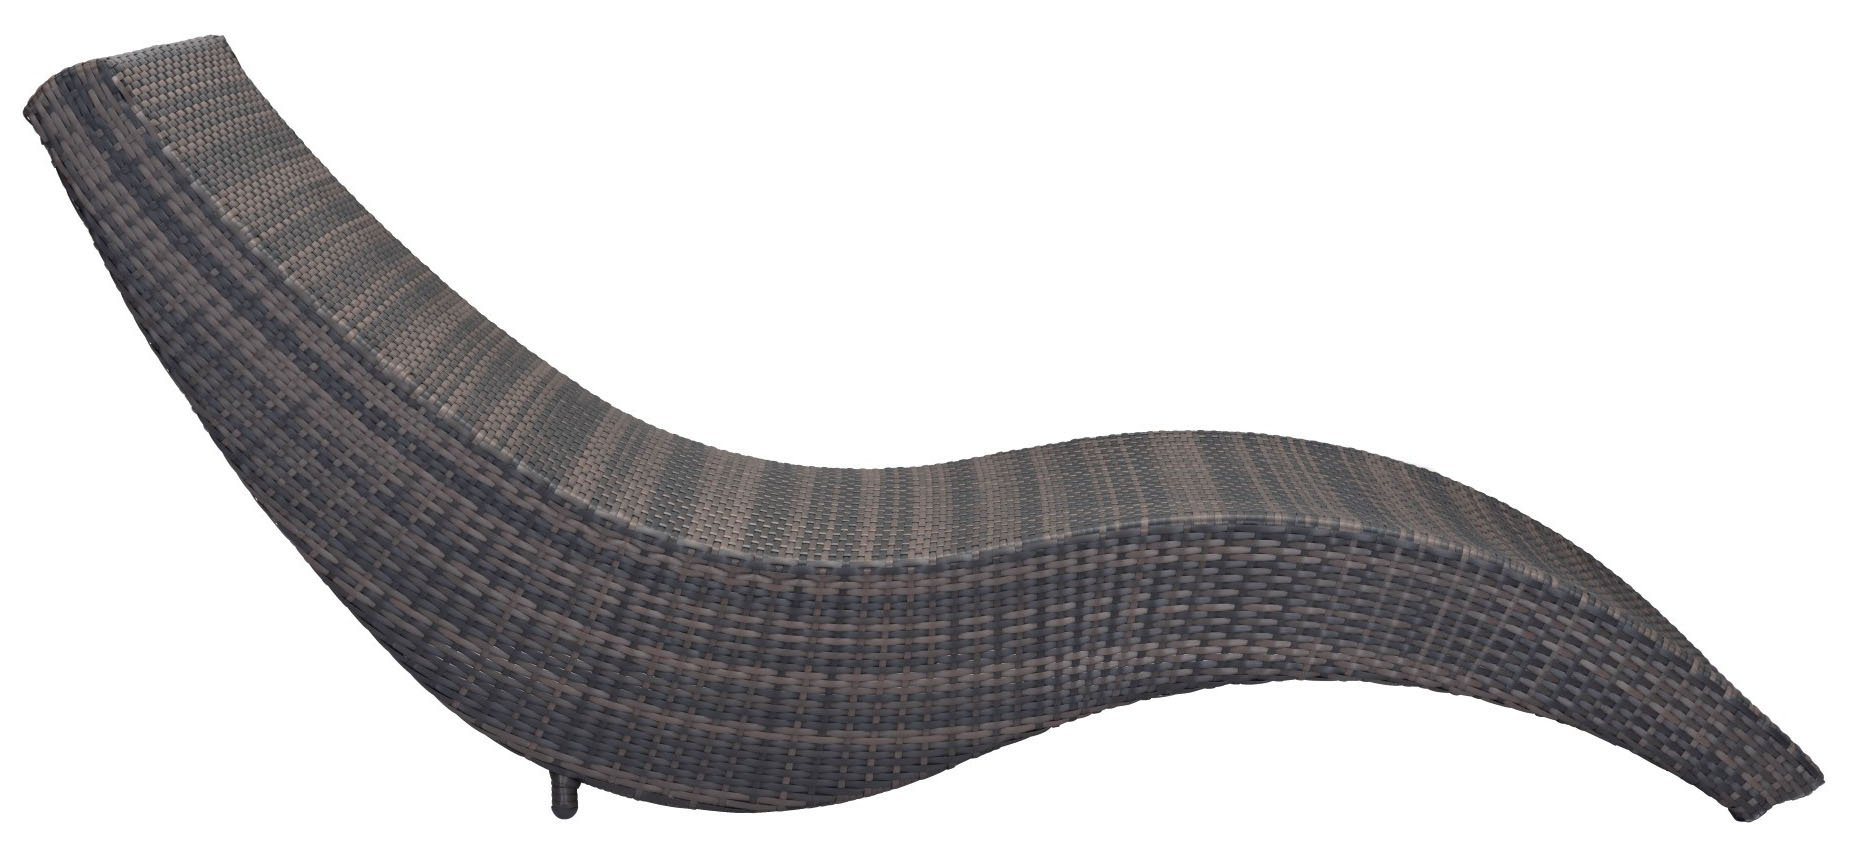 hassleholtz beach chaise lounge brown